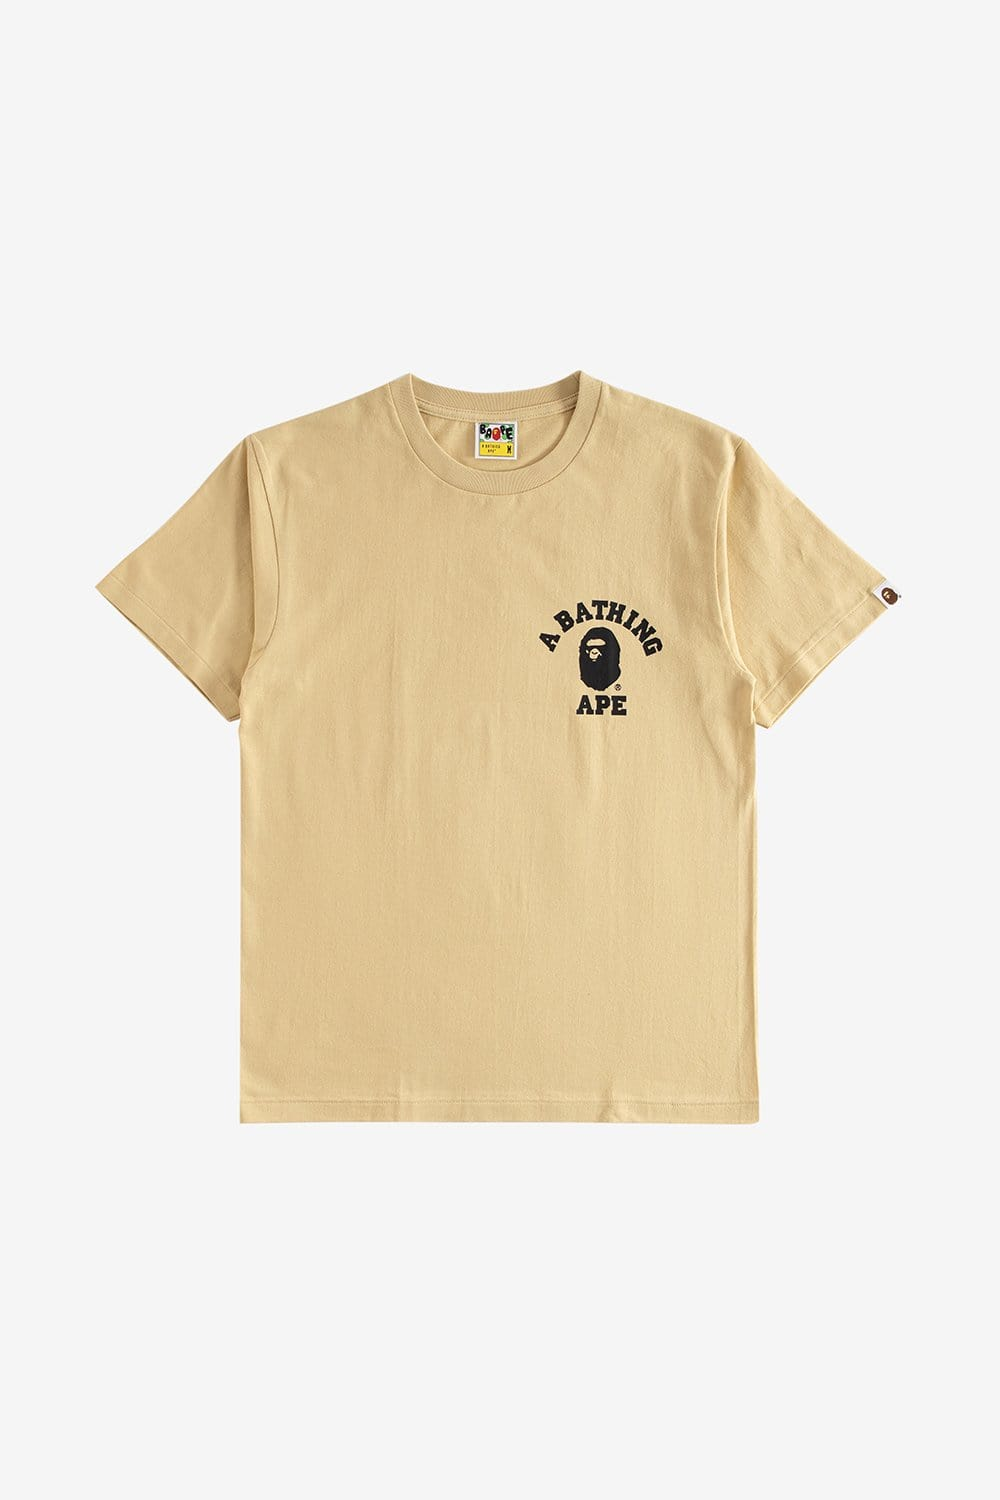 A Bathing Ape Apparel Bicolor College ATS Tee